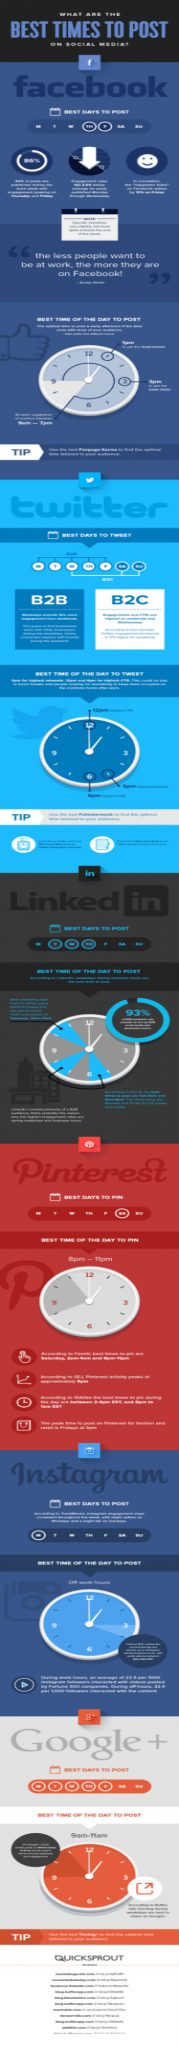 Best Time To Post On Social Media Elaborated in a better way